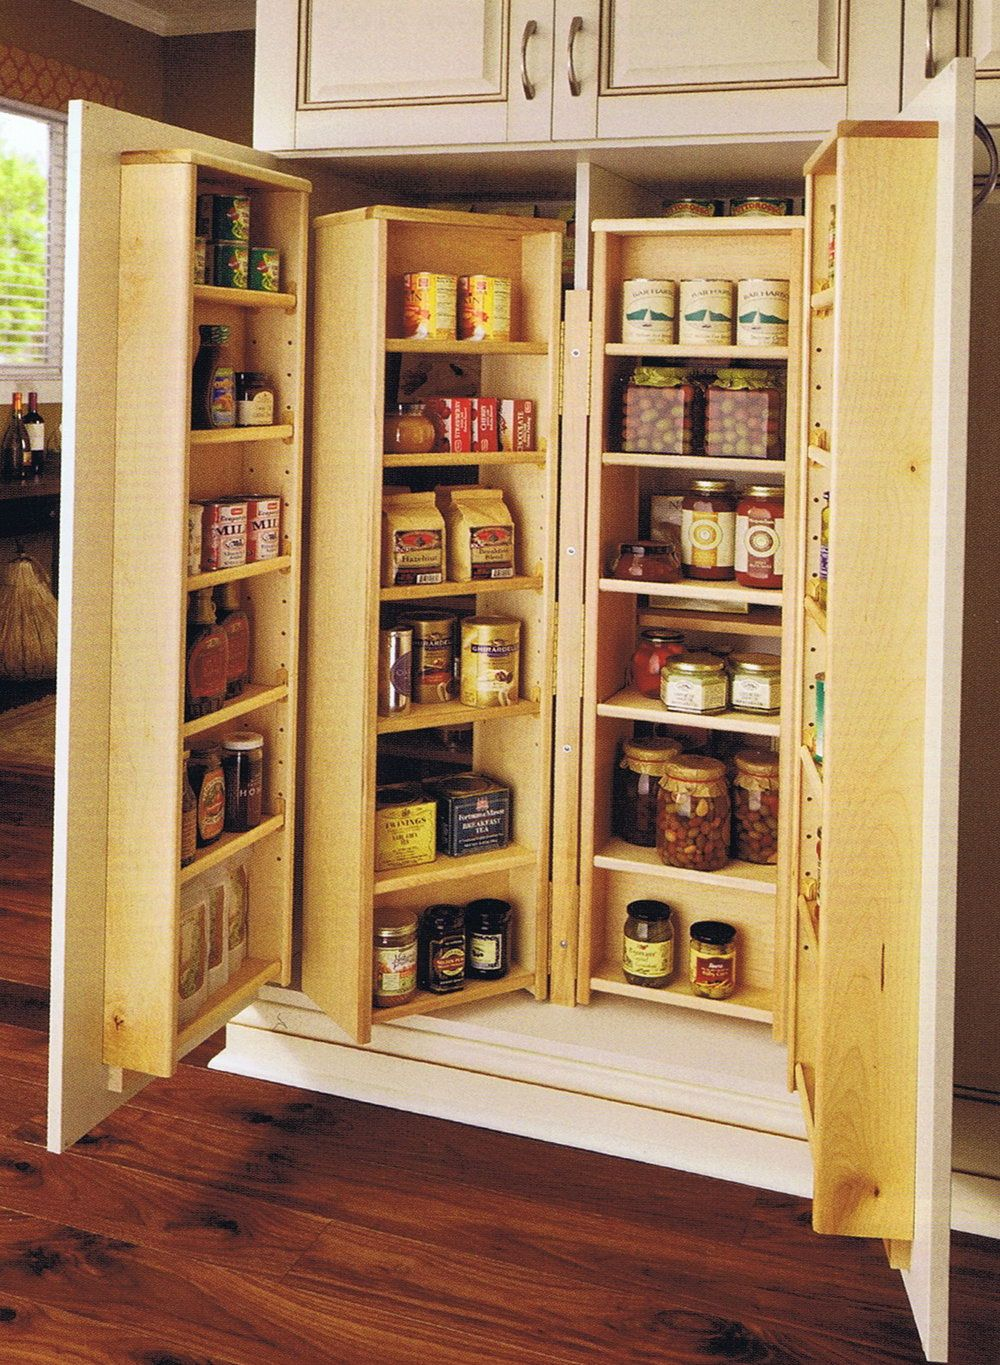 how to build a kitchen pantry cabinet plans from cheap kitchen rh pinterest com how to build a corner kitchen pantry cabinet how to build a kitchen pantry cabinet plans